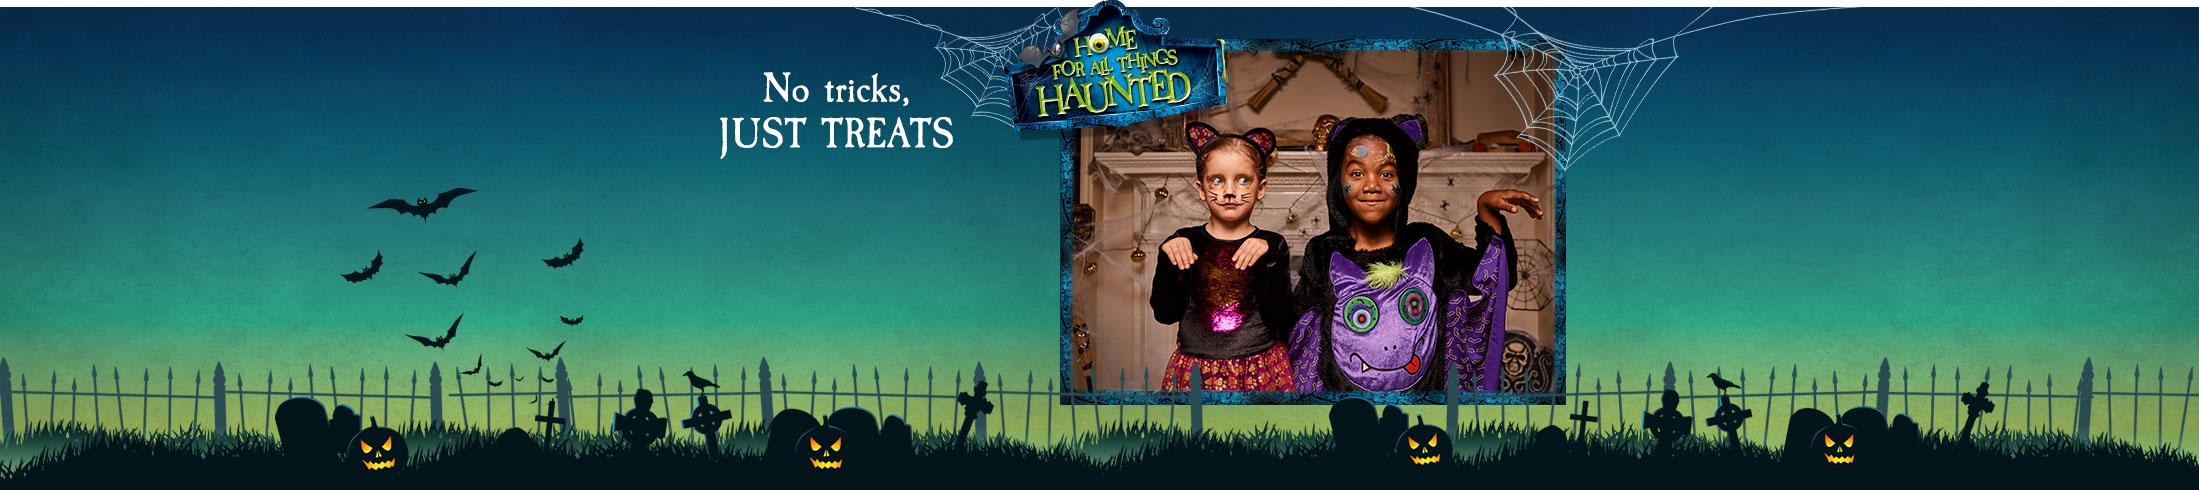 It's time to get scary! Discover our frighteningly fun kids Halloween outfits